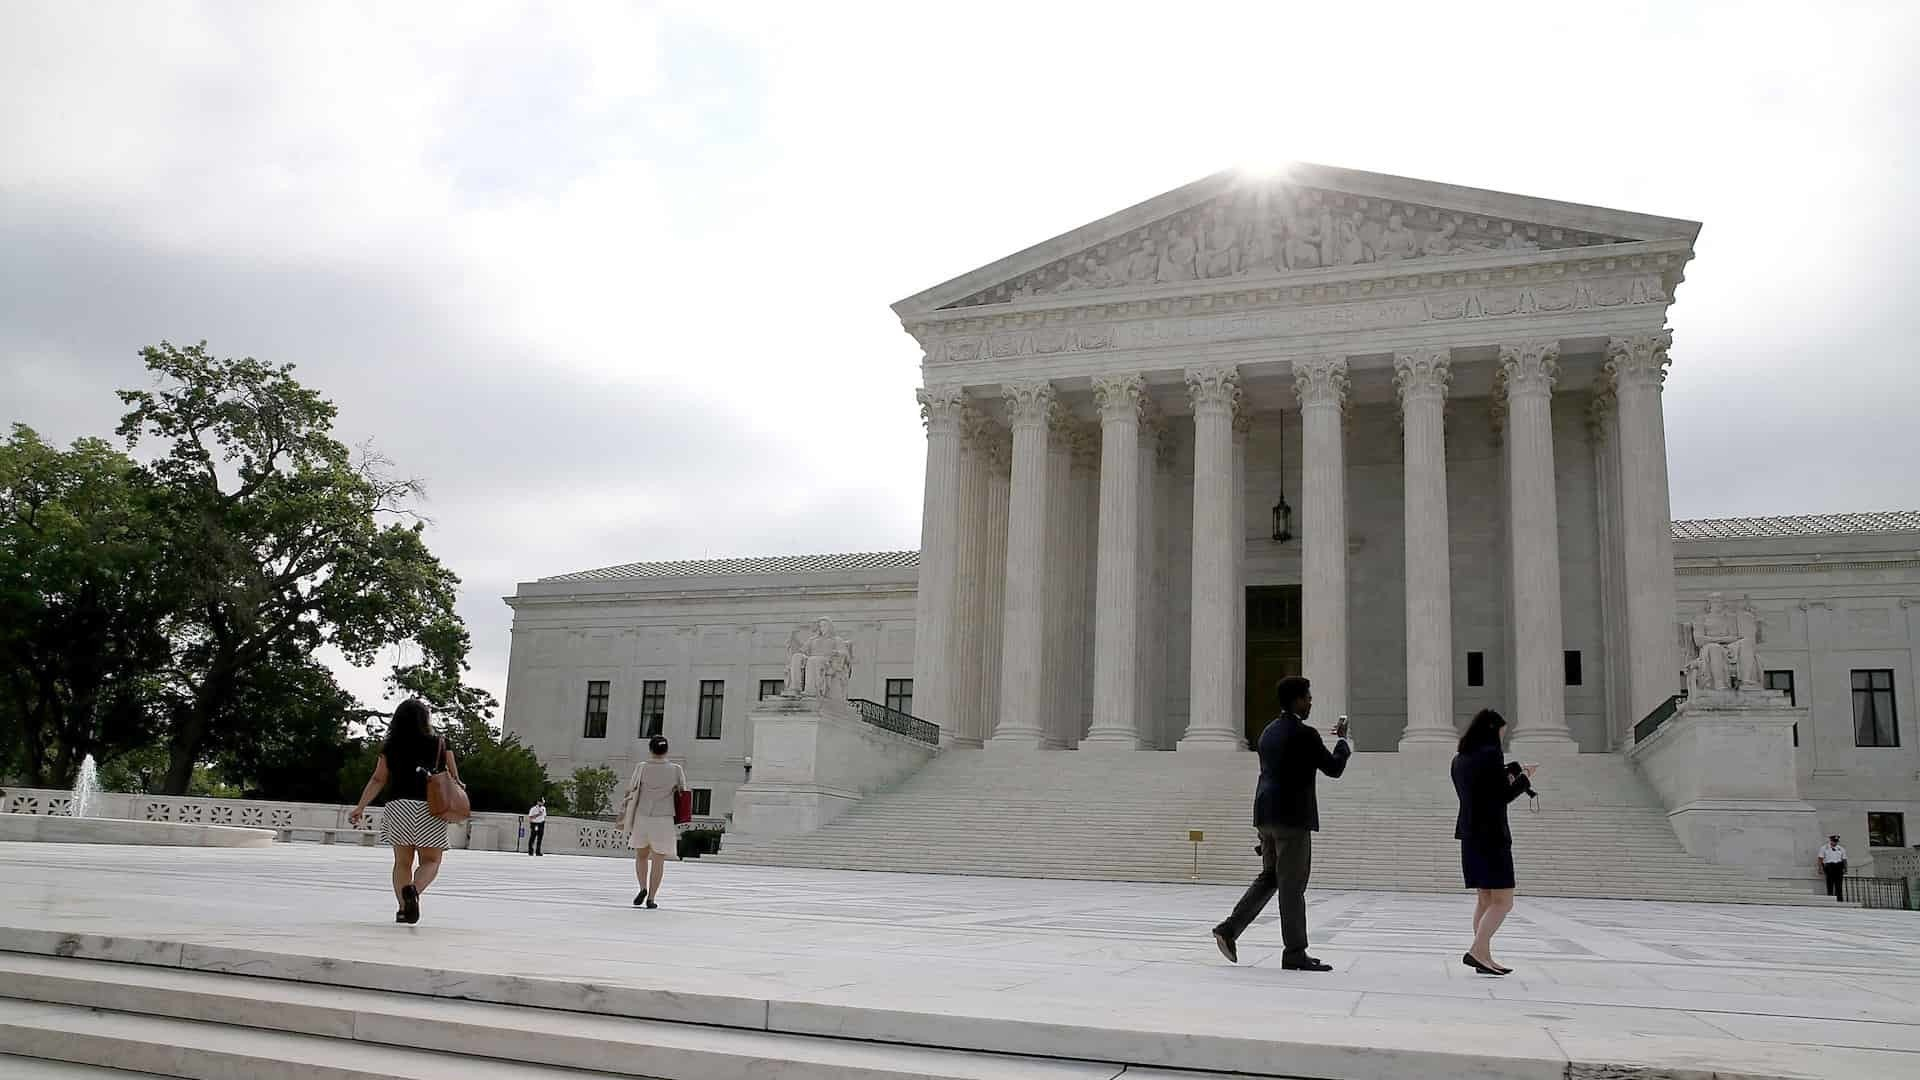 North Carolina gerrymandered districts suppressed black votes, Supreme Court rules